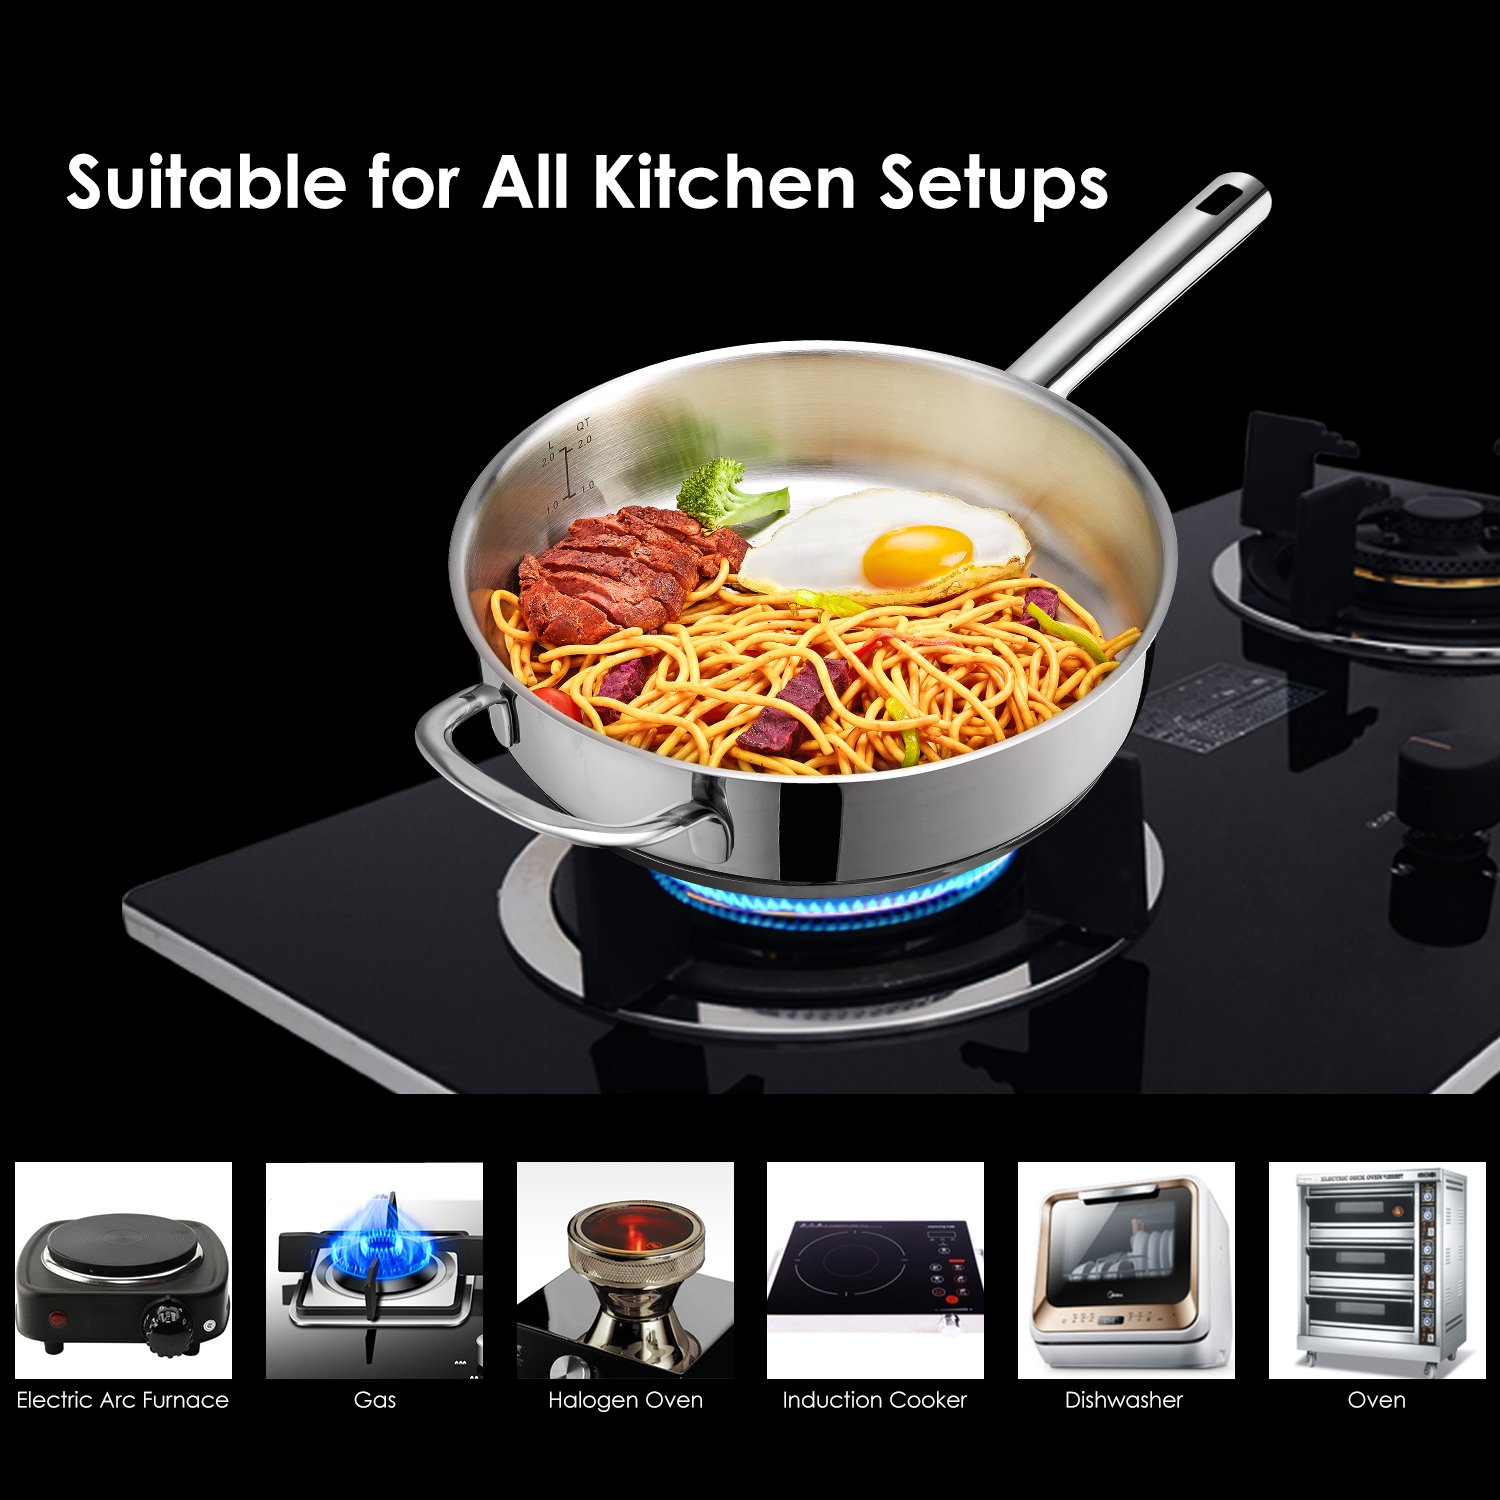 Deik Cookware Set, Kitchenware Set, MultiClad Pro Stainless Steel 12-Piece Pots and Pans Set, Rustproof & Oven-Safe Cooking Pots, PFOA Free & Riveted Handles with a Bonus of Oven Mitts by Deik (Image #5)